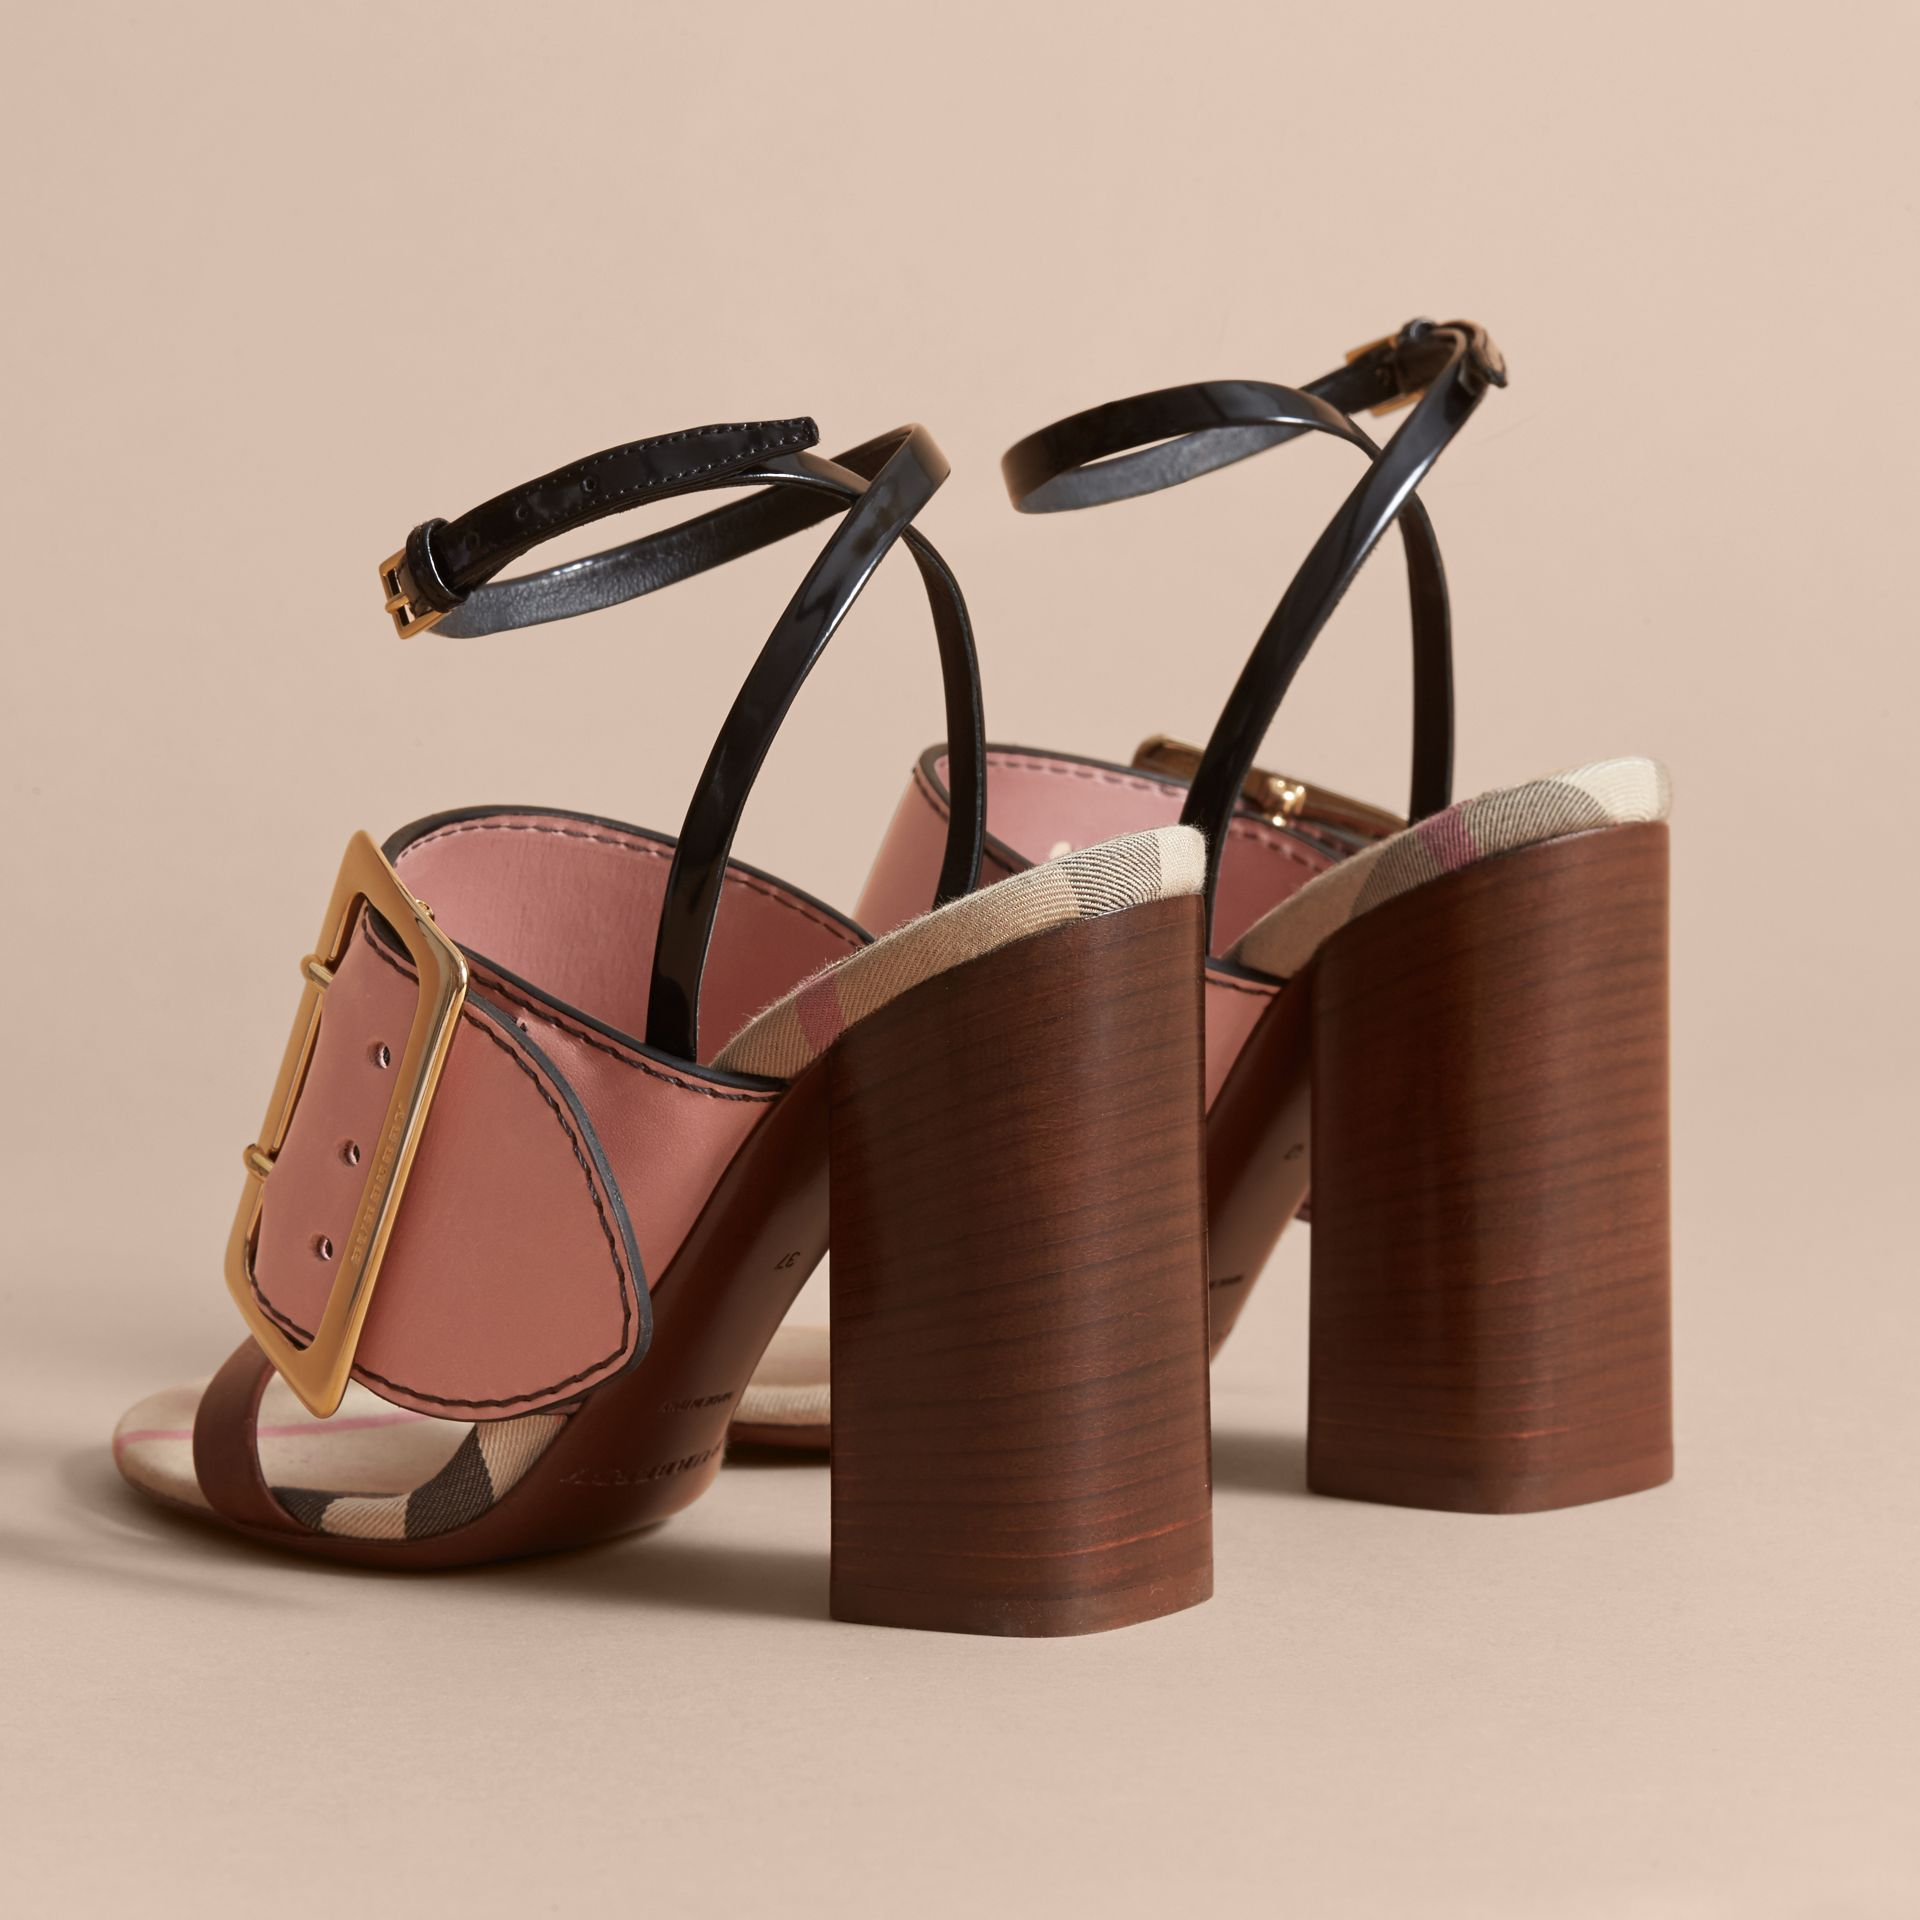 Buckle Detail Colour Block Leather Sandals in Nude Pink - Women | Burberry - gallery image 3